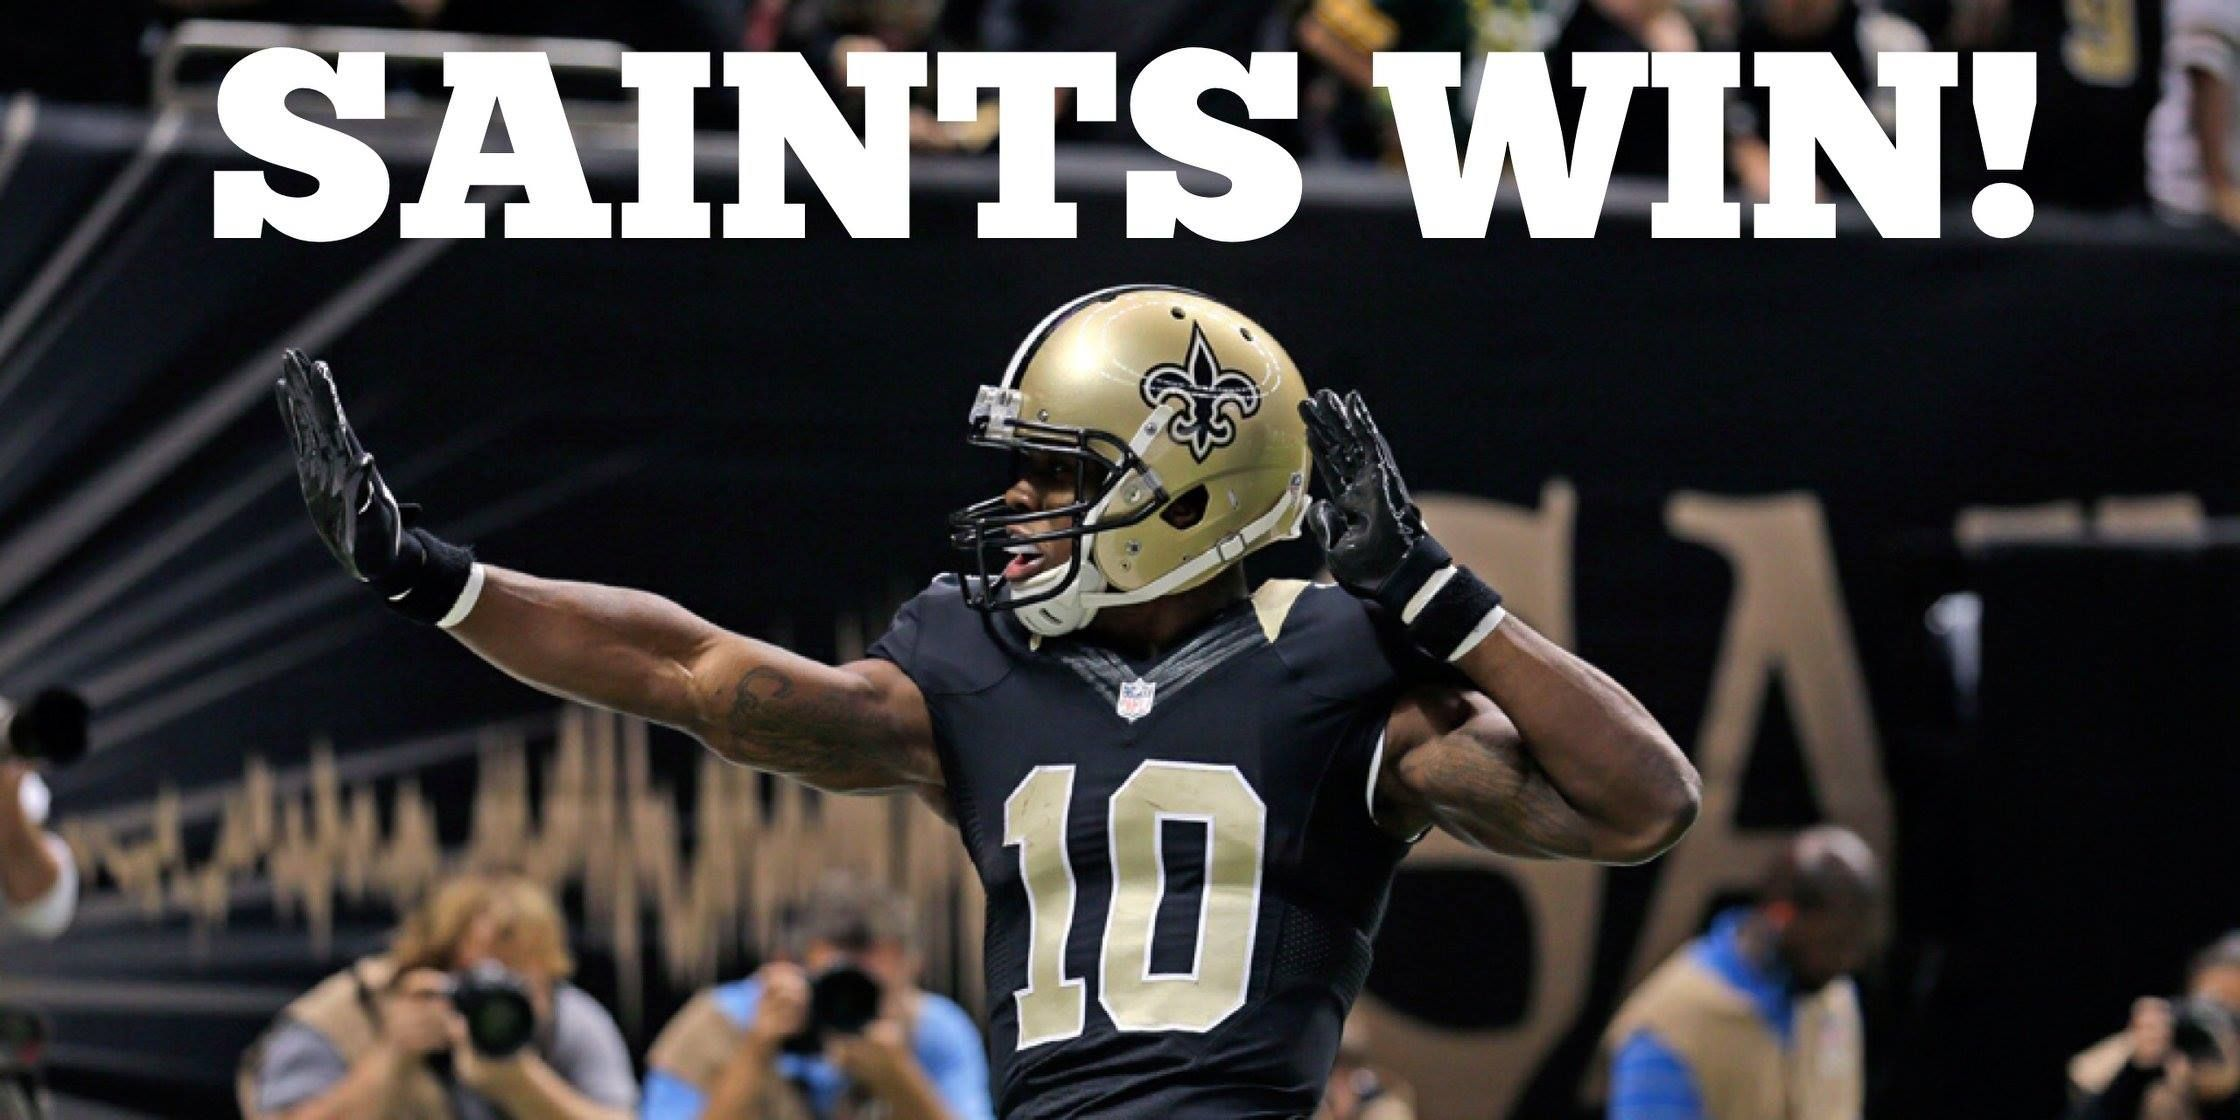 Pin By Justbeeinme On Who Dat Saints New Orleans Saints Louisiana Football